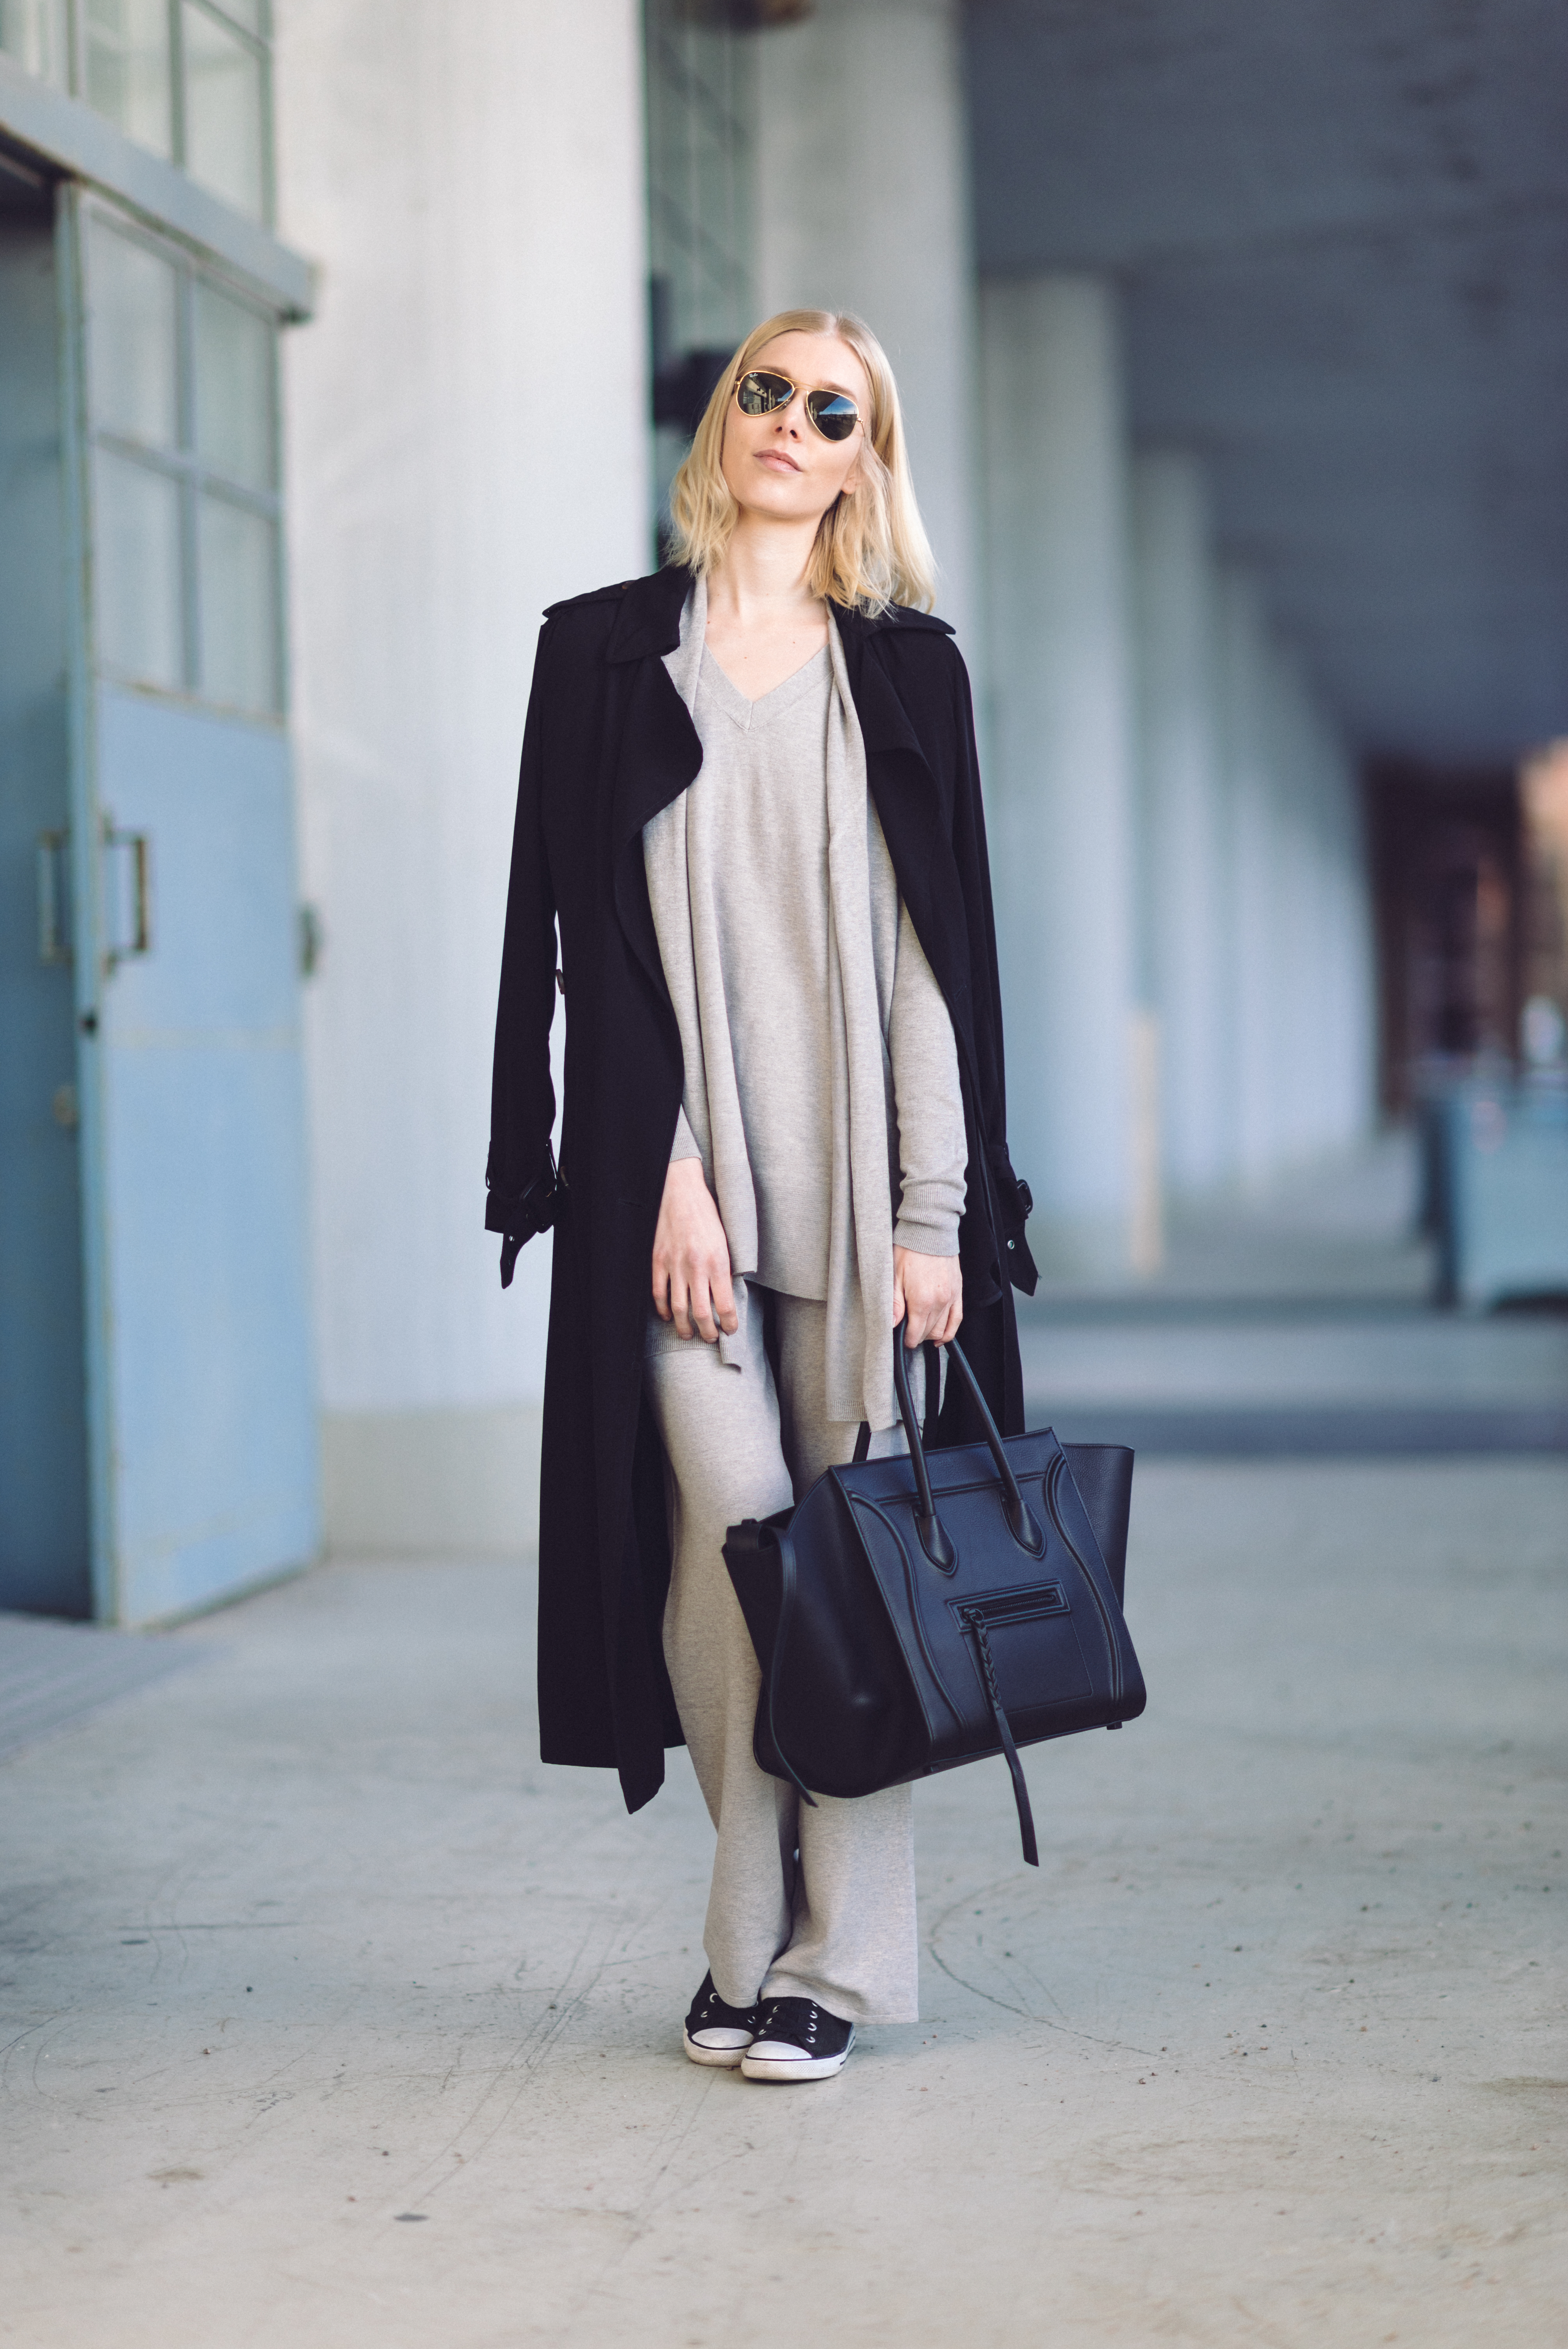 Celine-Bag-style-plaza-fashion-blog-5